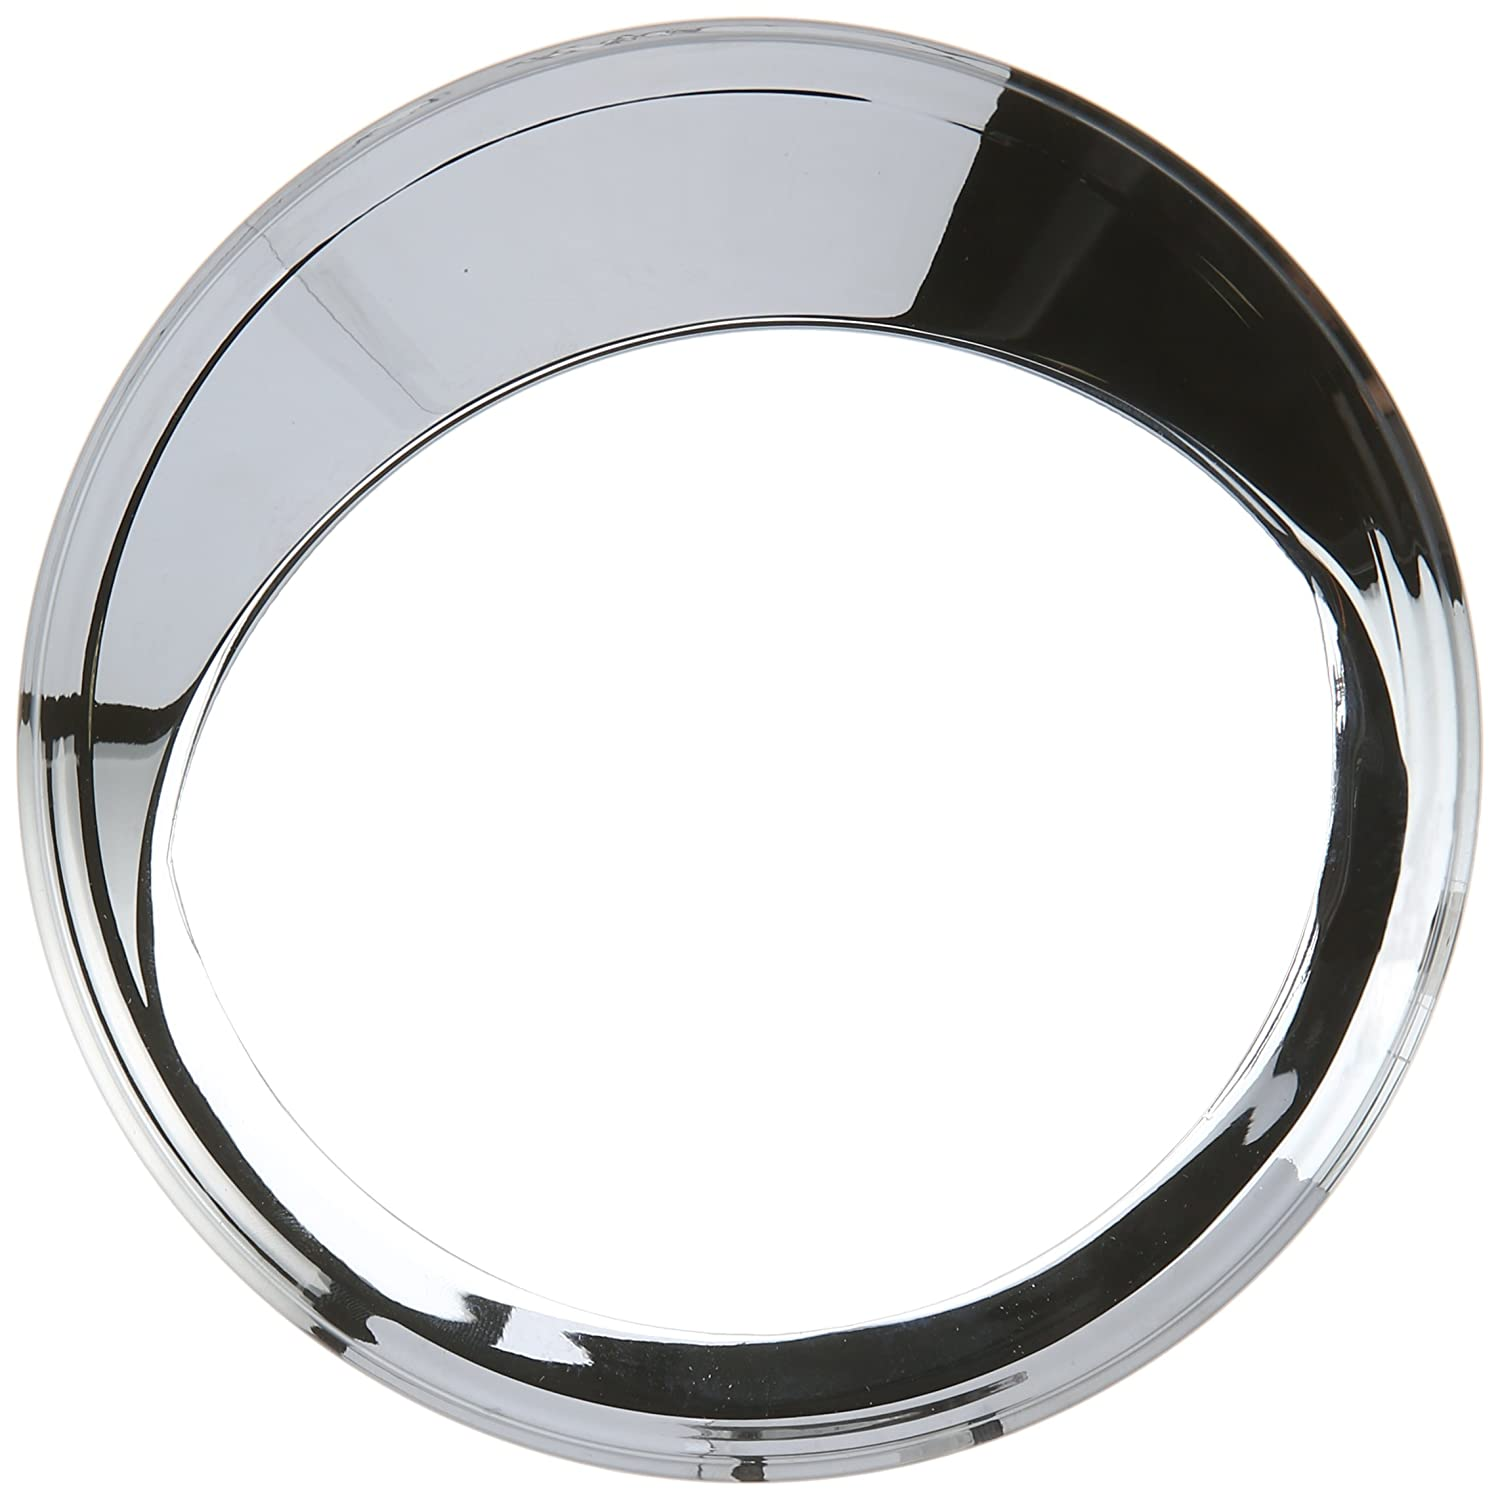 Kuryakyn 112 Speedometer Trim Ring with Visor